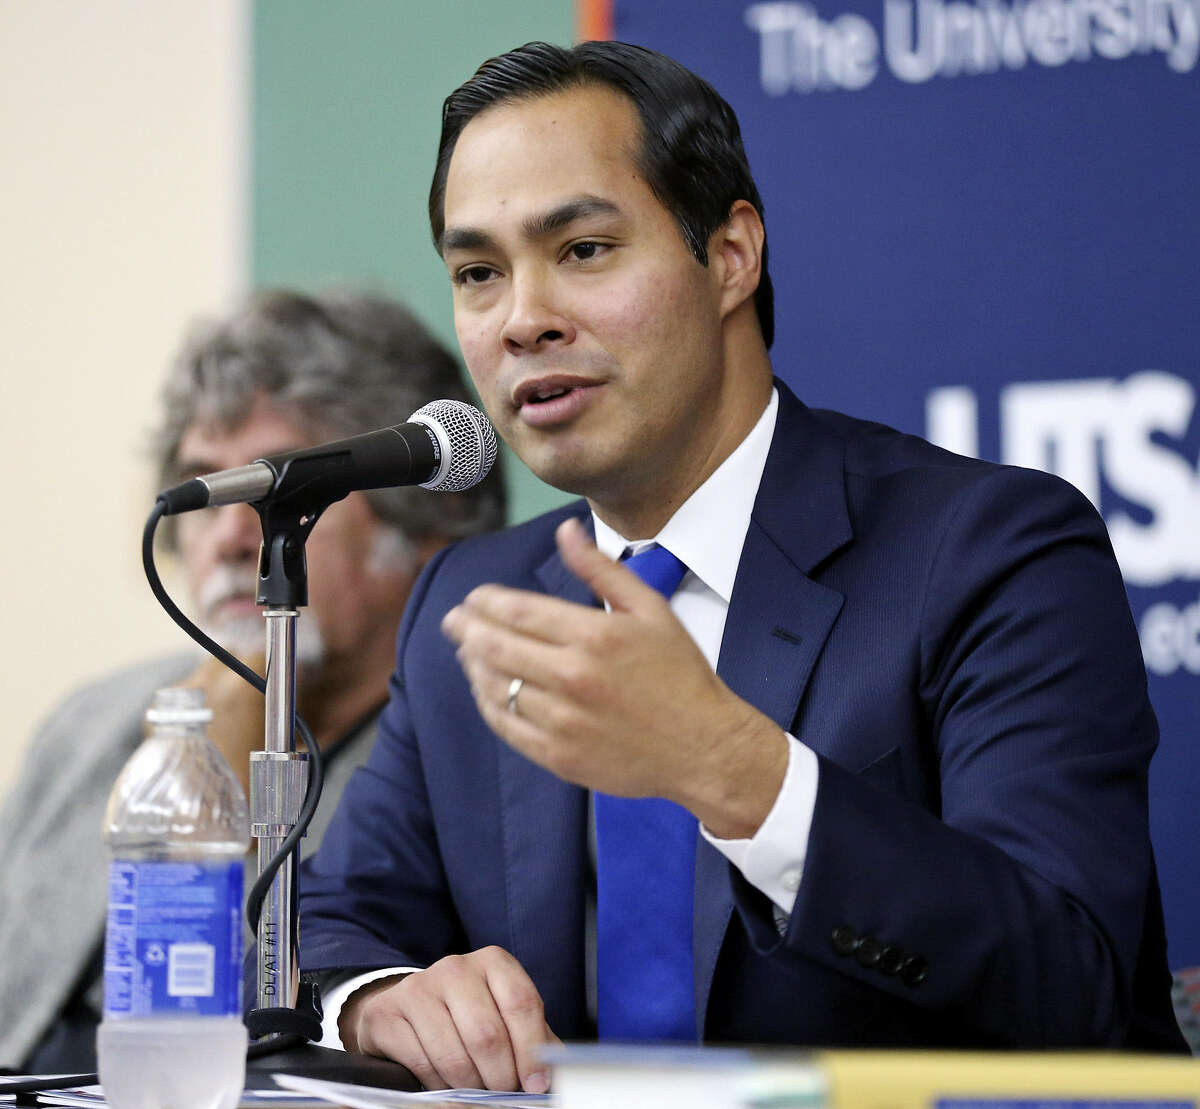 Mayor Julián Castro also swapped three council representatives. The new ones are below.